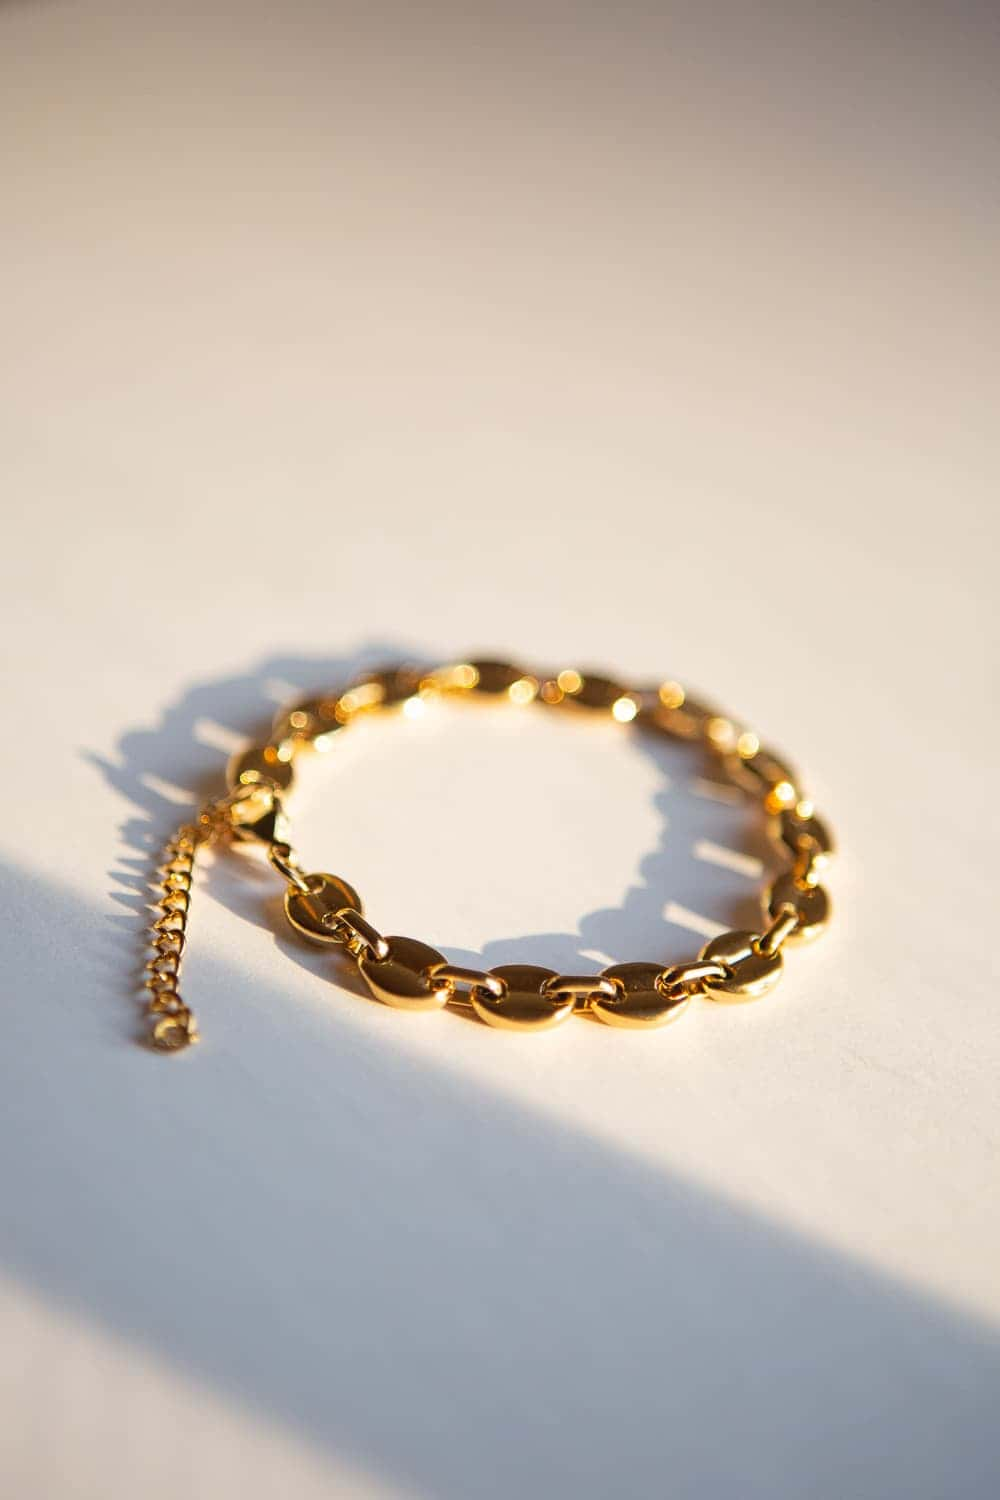 8mm Gold Puff Chain Bracelet